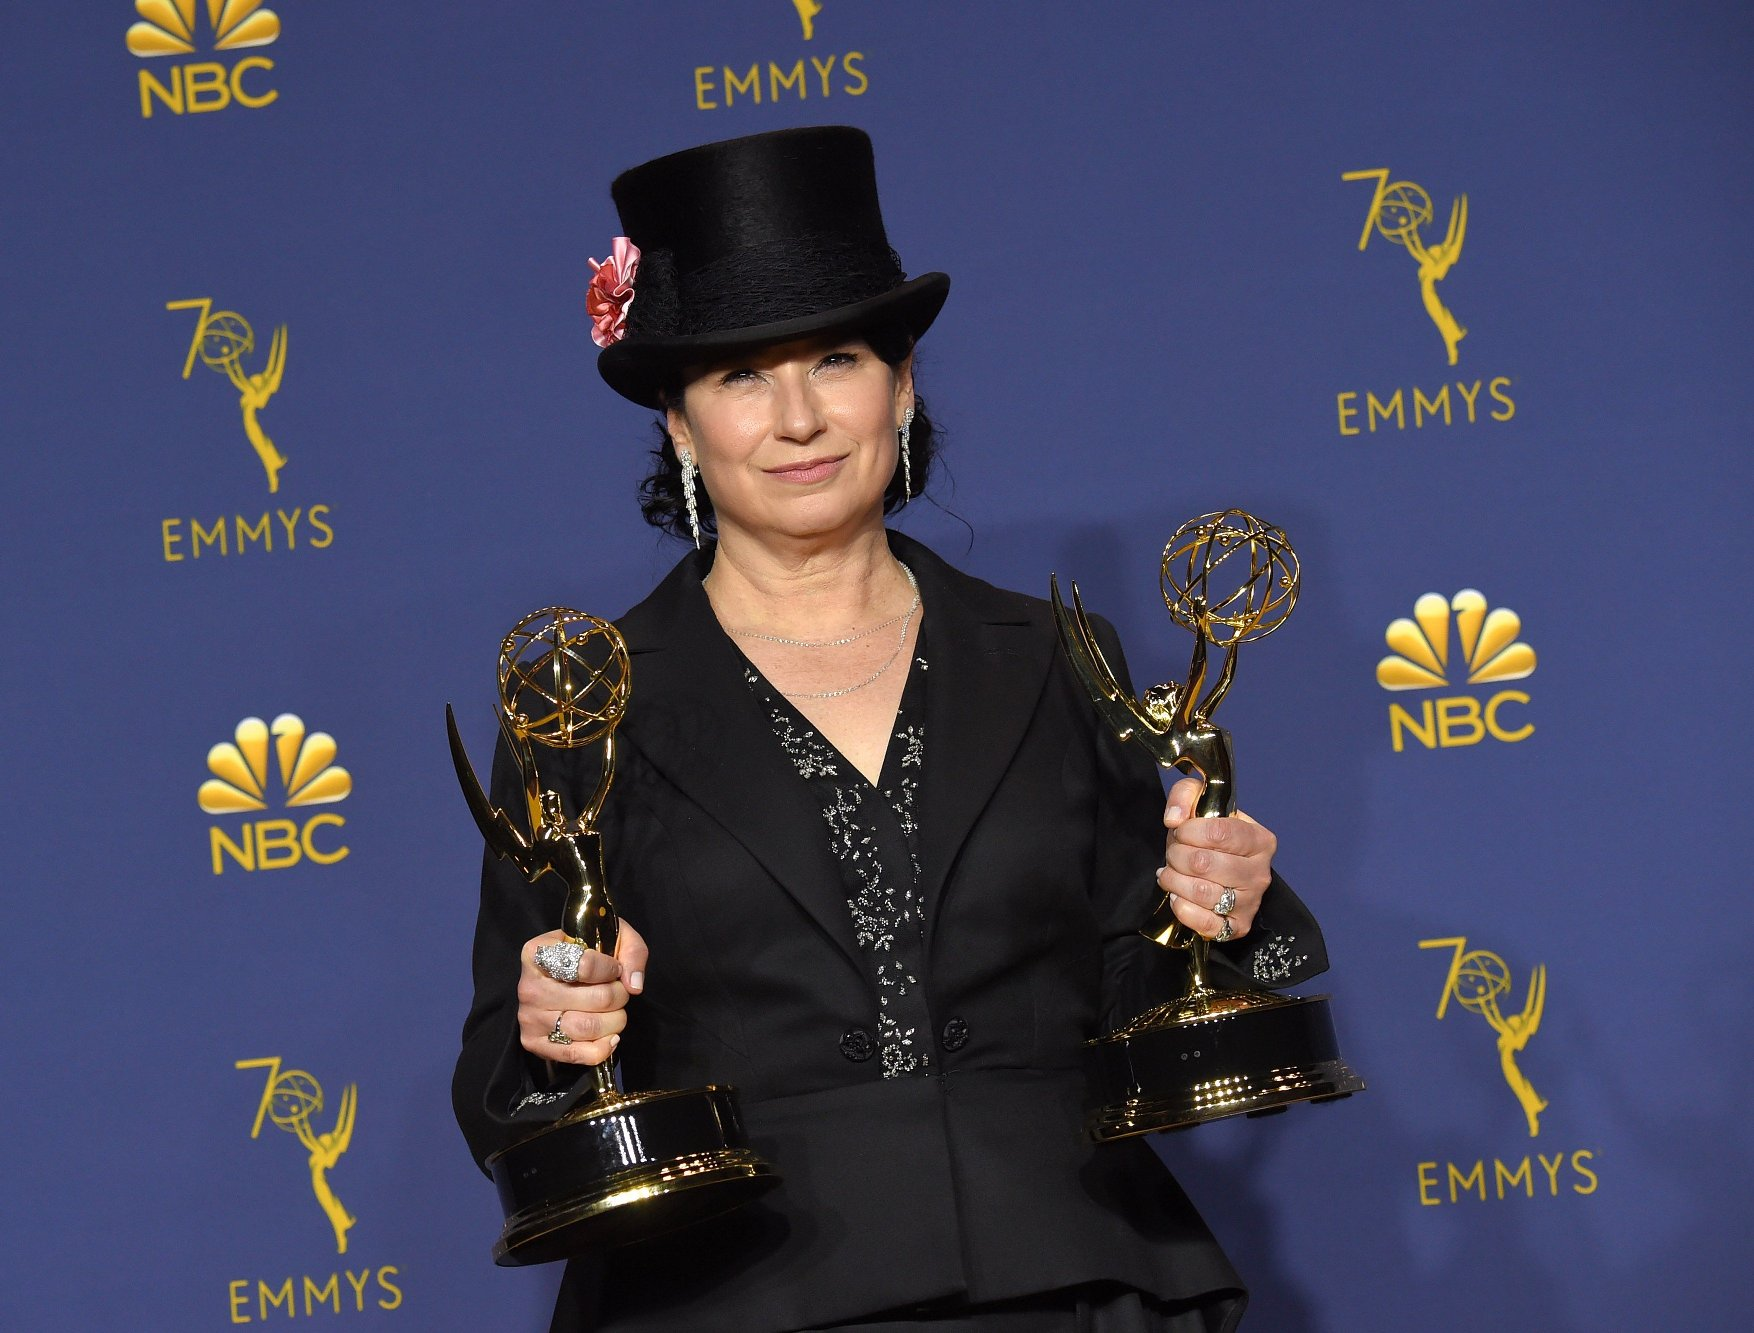 70th Primetime Emmy Awards held at Microsoft Theatre L.A. Live on September 17, 2018 in Los Angeles, CA © OConnor-Arroyo / AFF-USA.com. 17 Sep 2018, Image: 387179384, License: Rights-managed, Restrictions: World Rights, Model Release: no, Credit line: Profimedia, Mega Agency